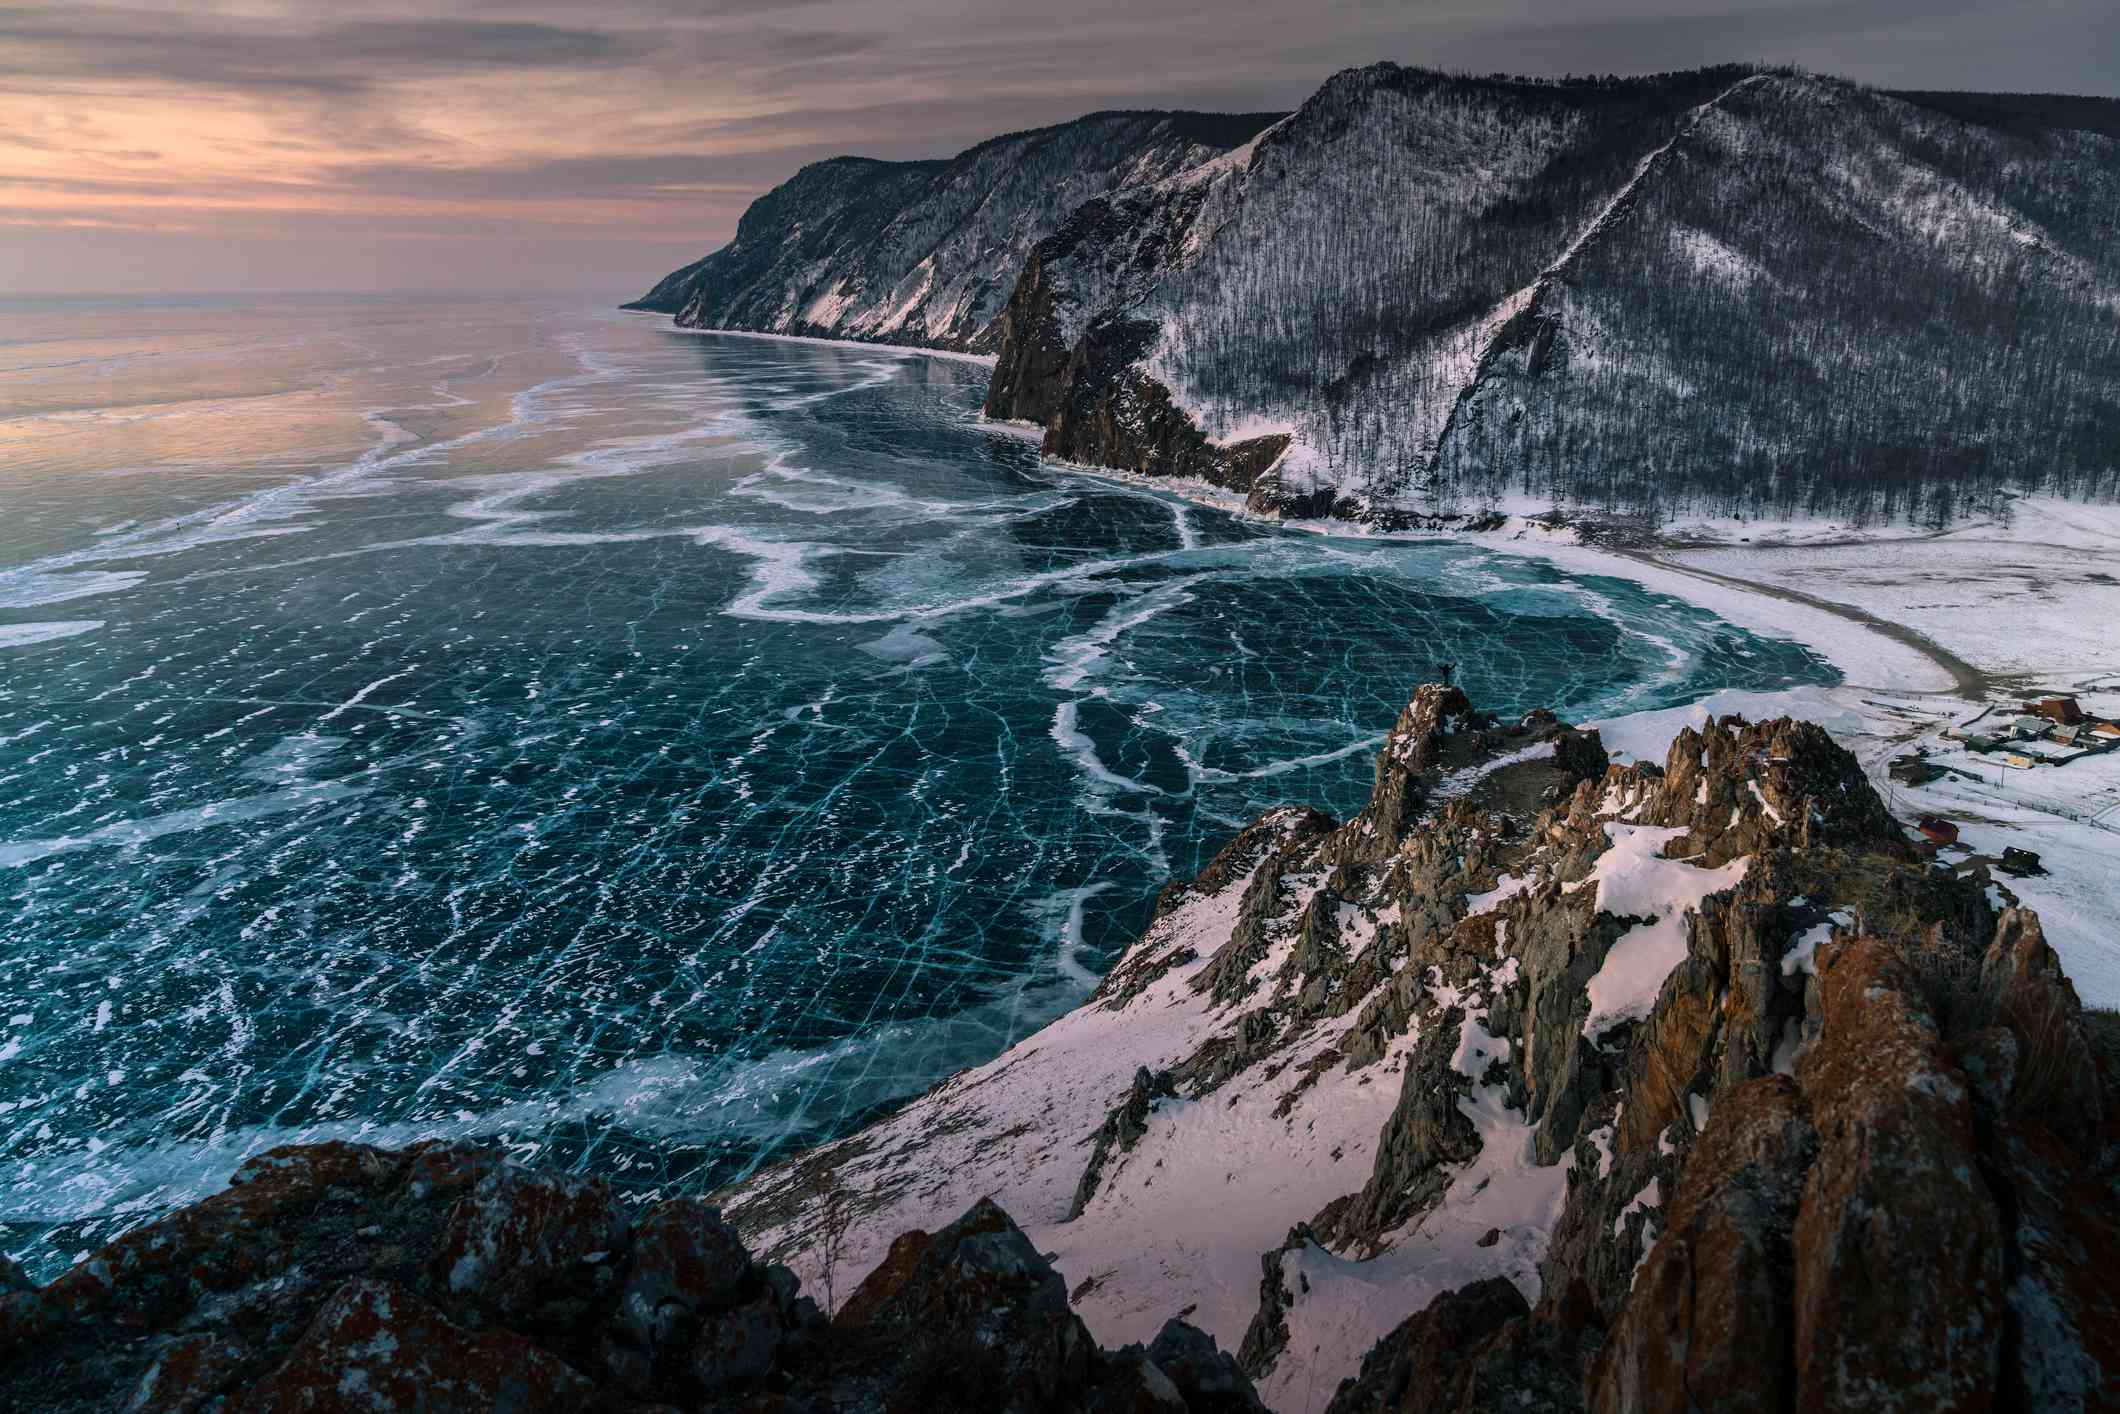 An aerial view of one of Lake Baikal's shores.